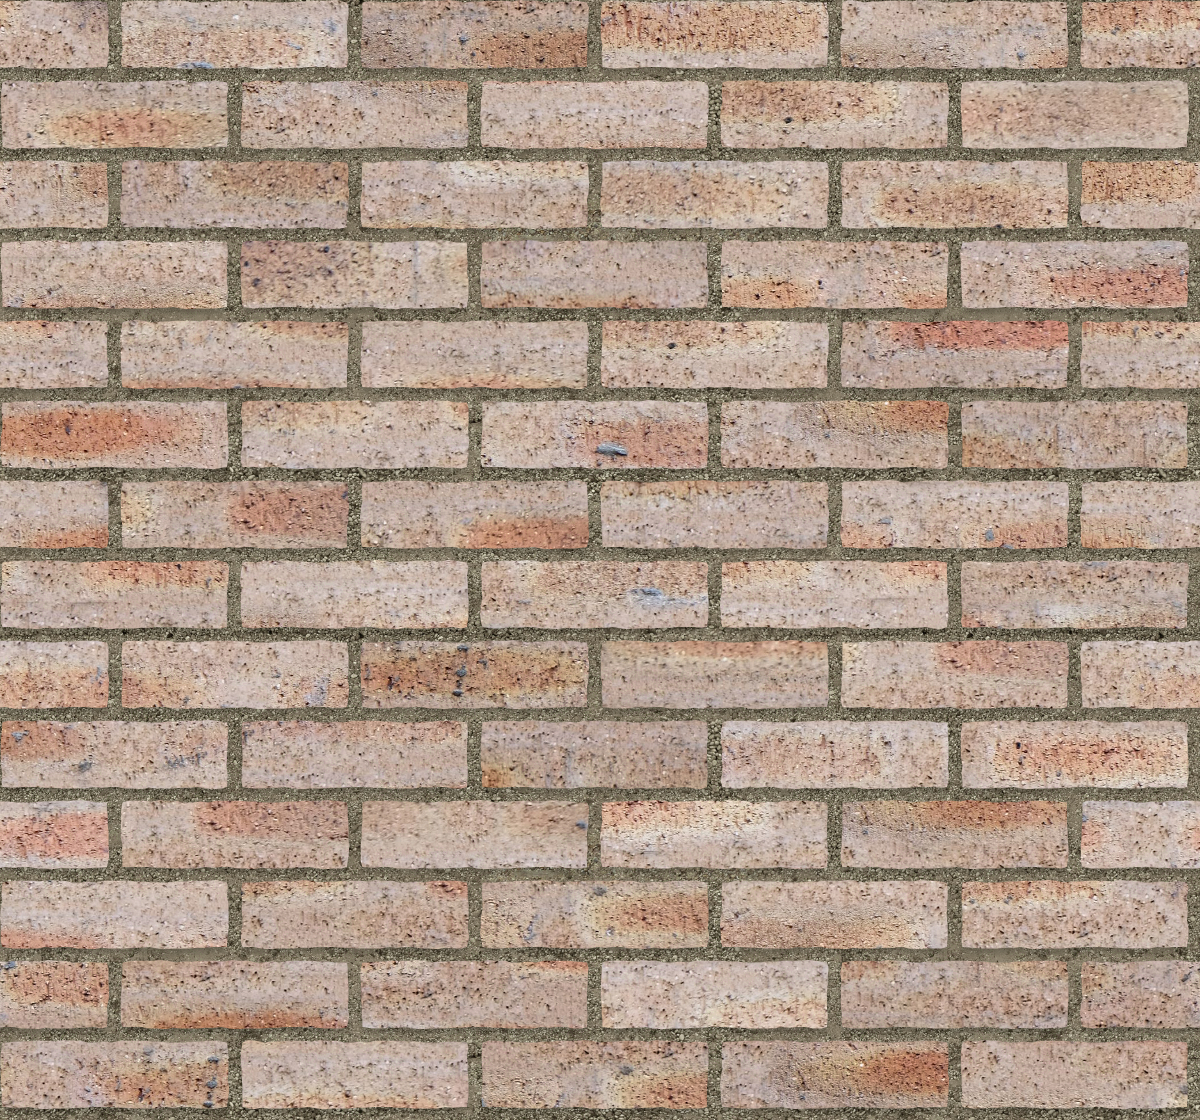 A seamless brick texture with dragfaced brick  arranged in a stretcher pattern